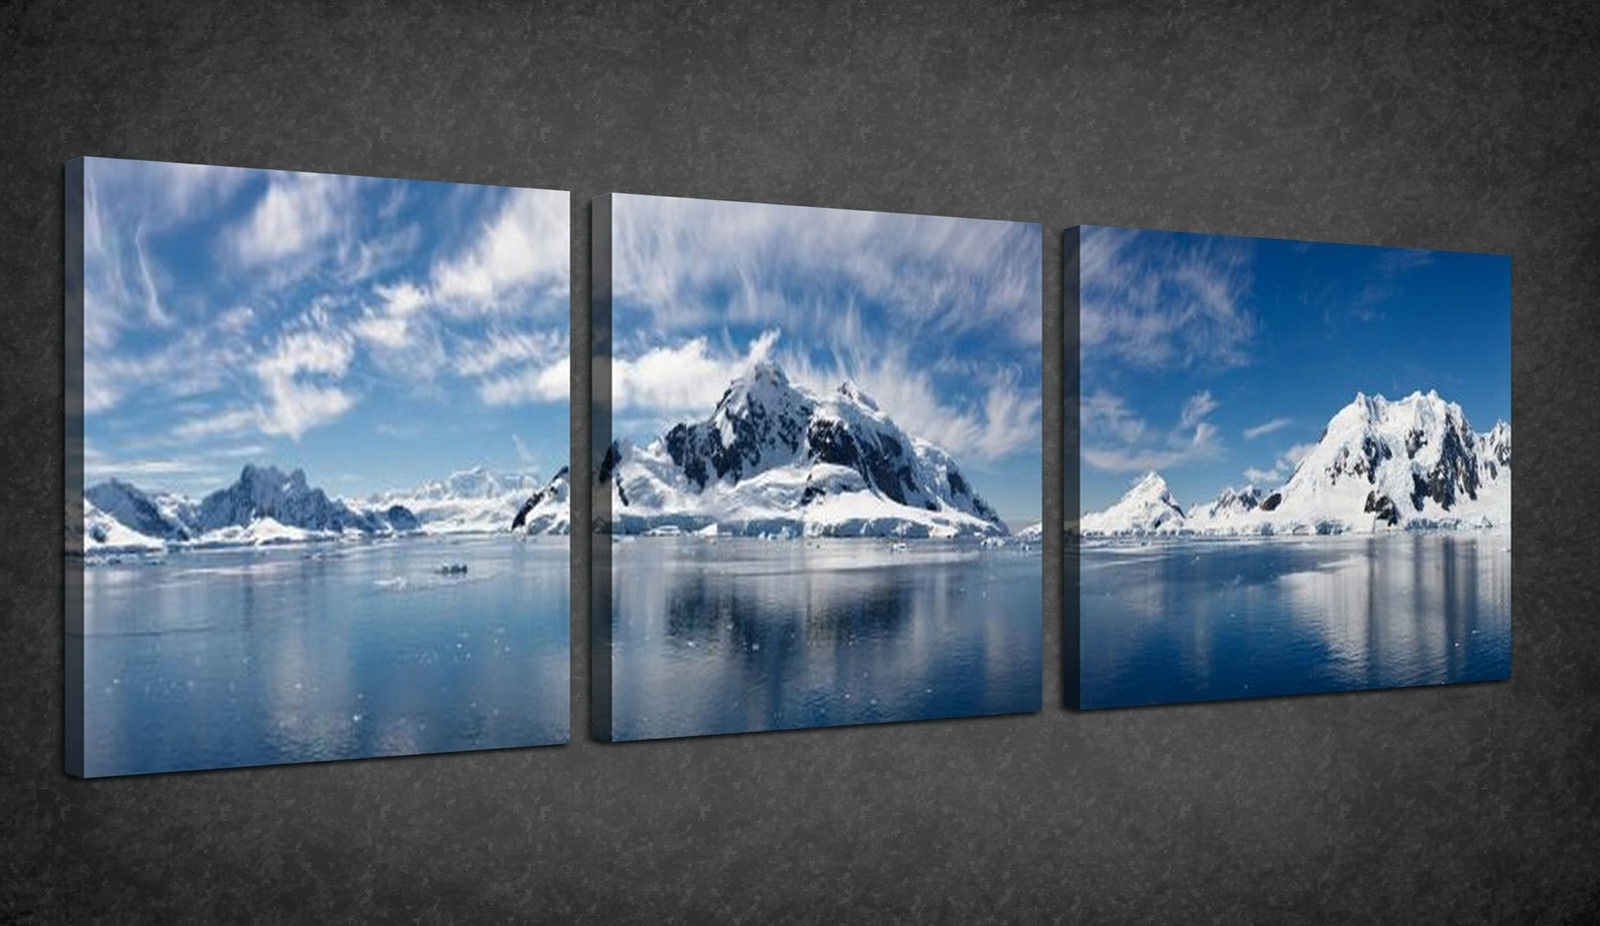 Widely Used Panoramic Wall Art For 45 Panoramic Wall Art, Nashville Sunset Skyline Panoramic Canvas (View 6 of 15)